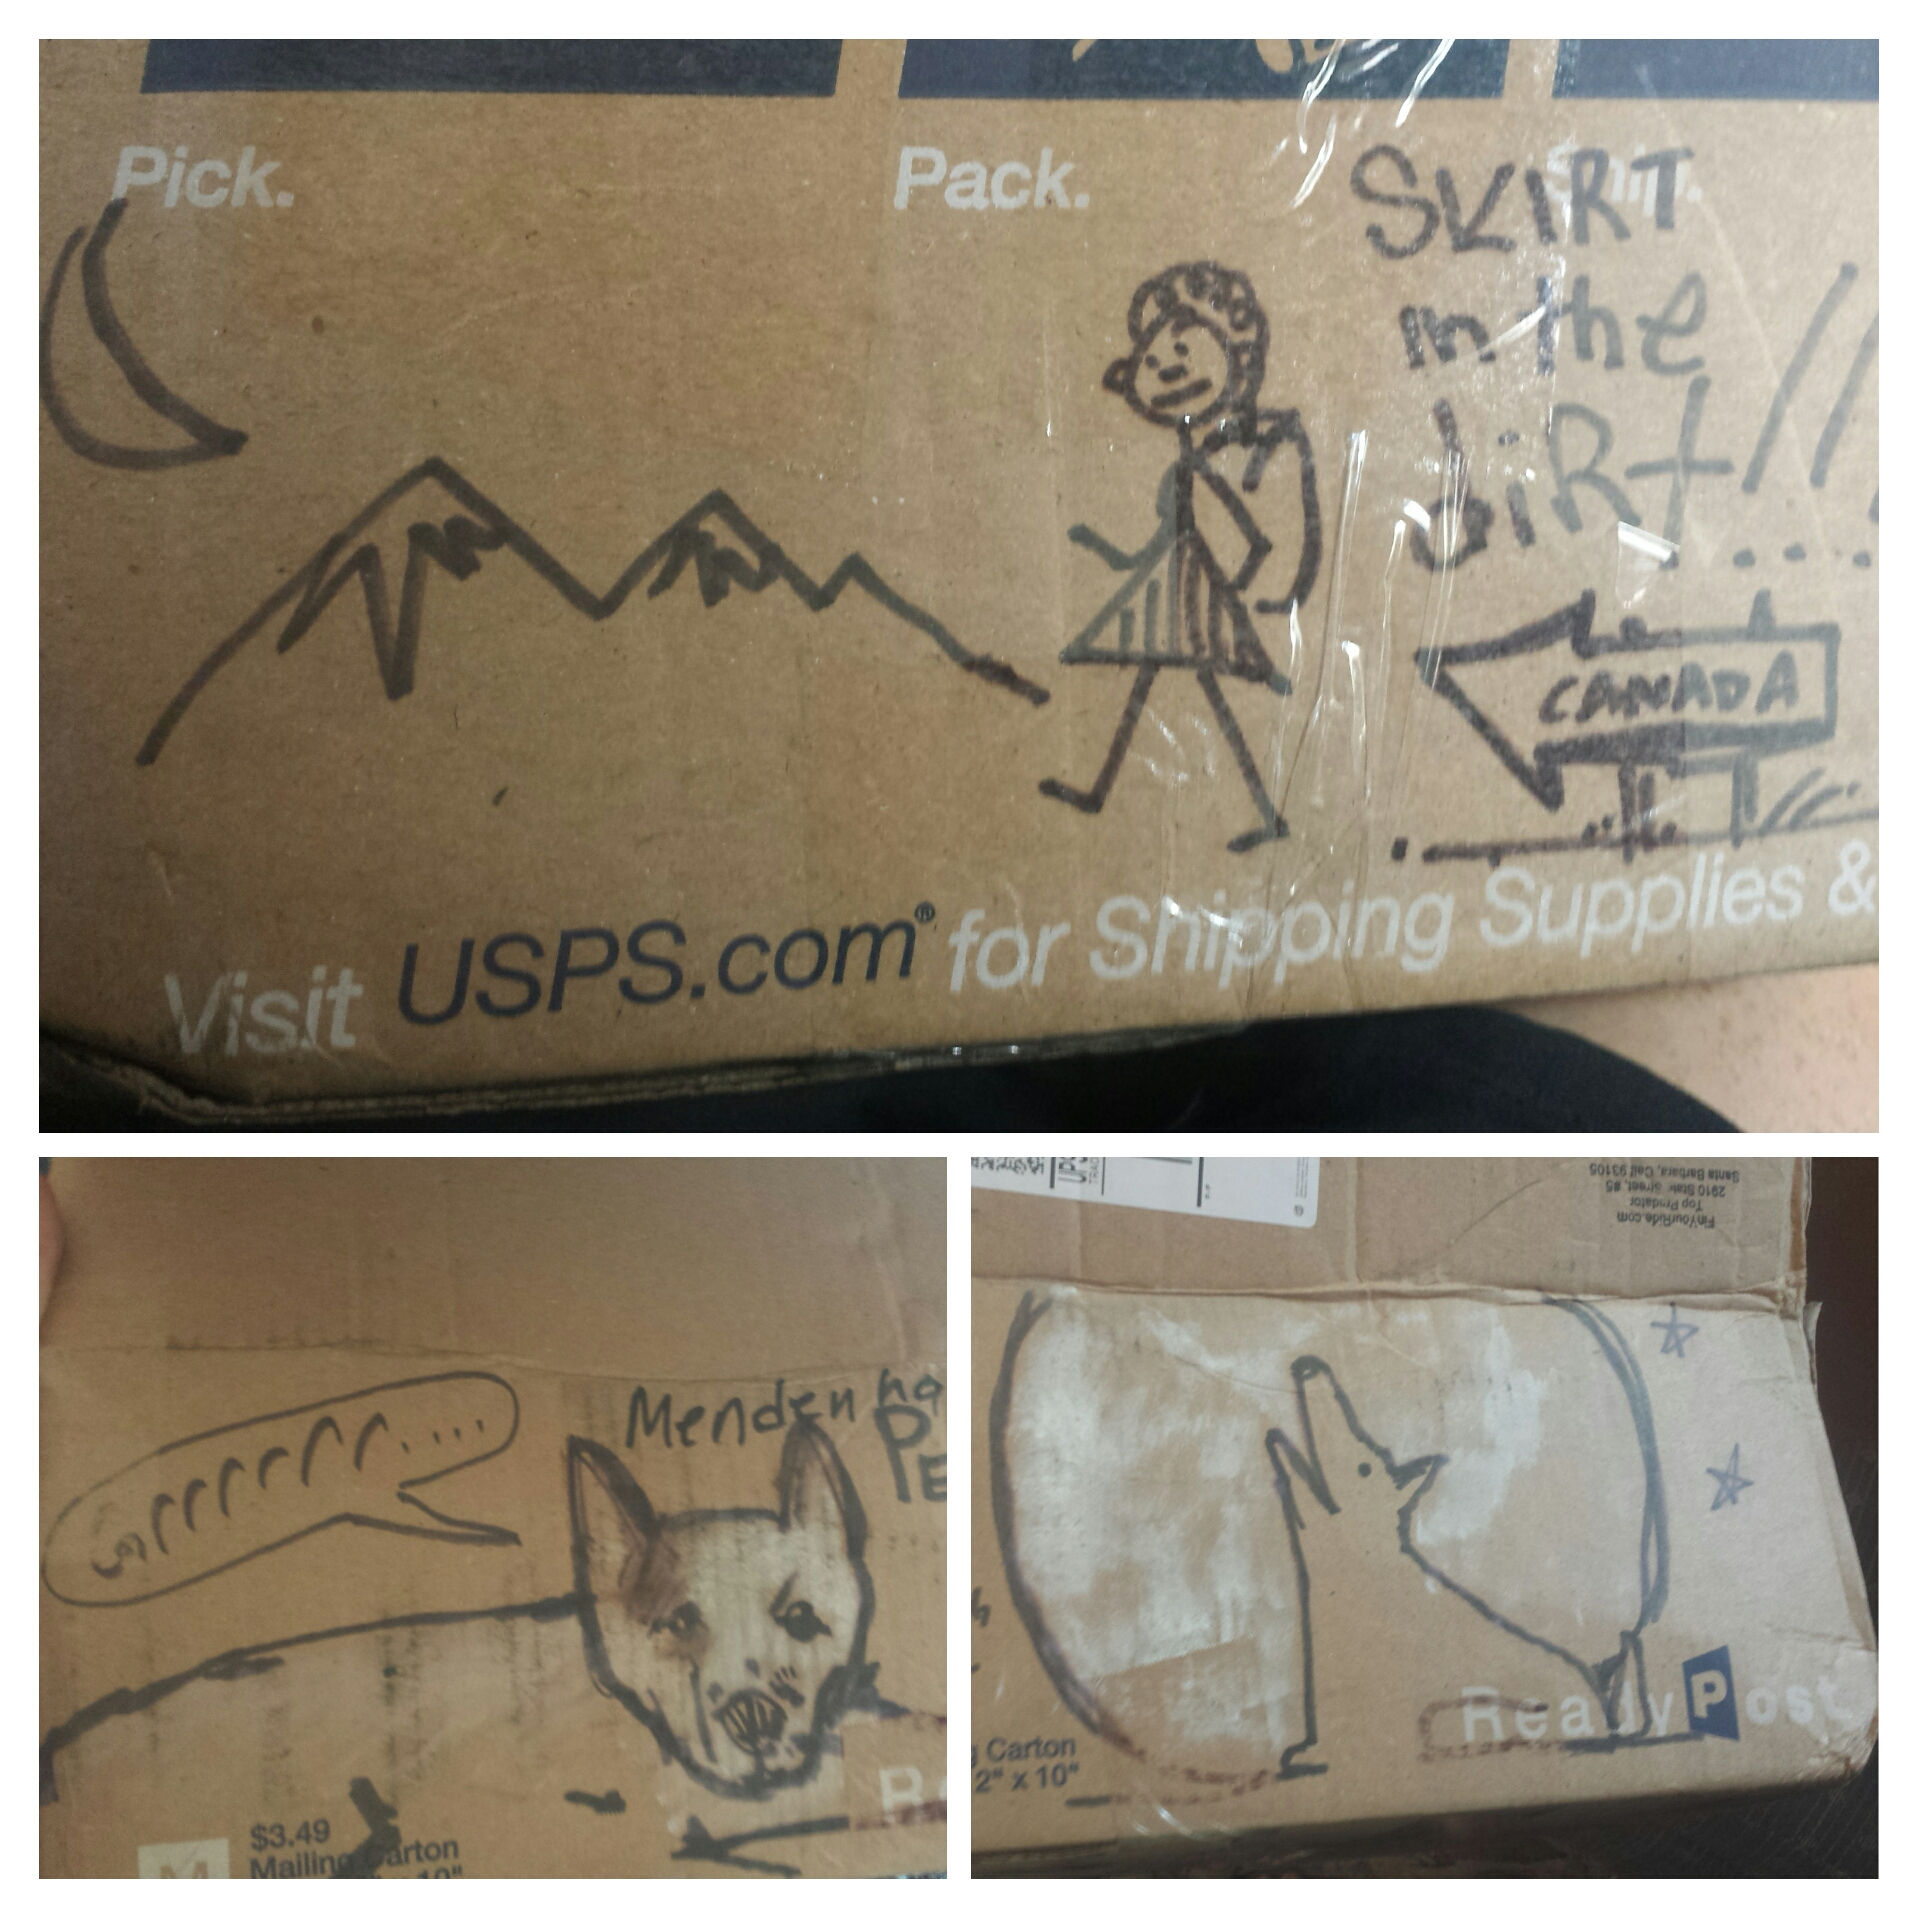 Awesome doodles from Artie on my Dinsmore's resupply box